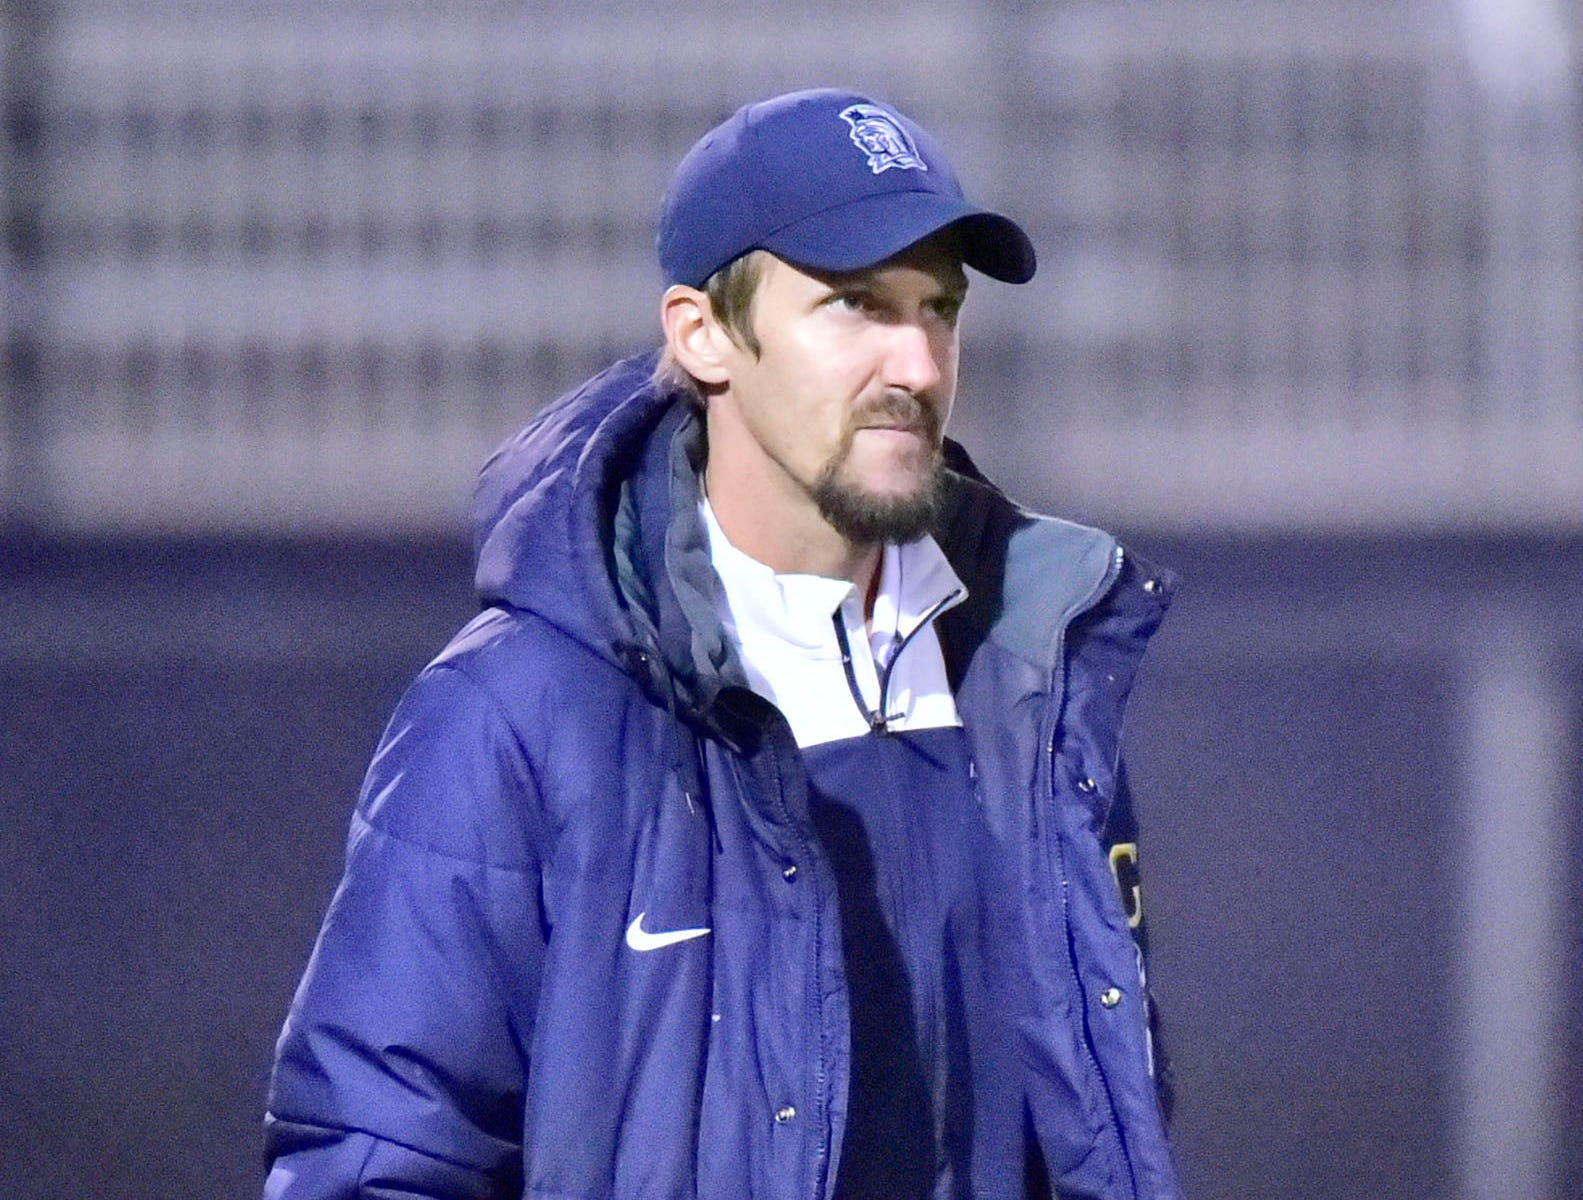 Chambersburg's Corey Grove coaches the Trojans. Chambersburg lost a first round D3 soccer match to Dallastown 2-1 on Tuesday, Oct. 23, 2018.